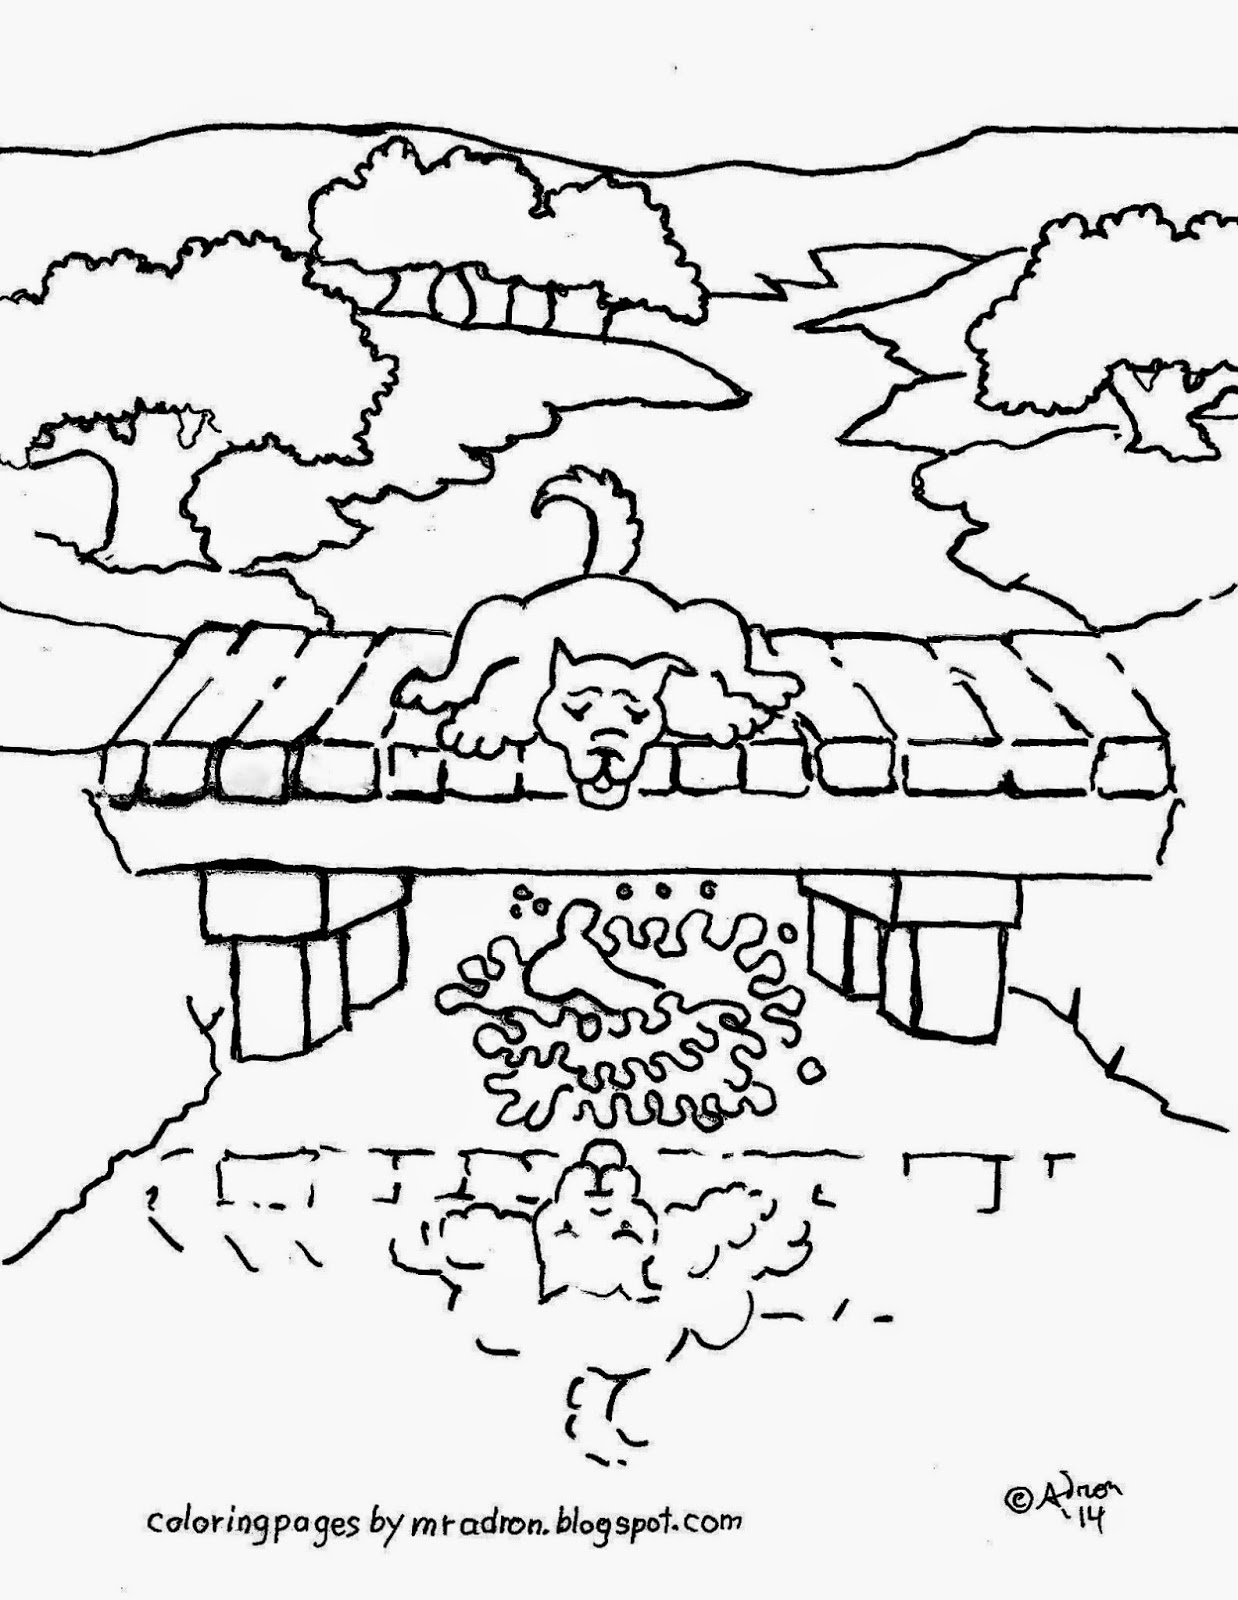 Coloring Pages For Kids By Mr Adron Aesop S Fable The Dog And The River Reflection Free